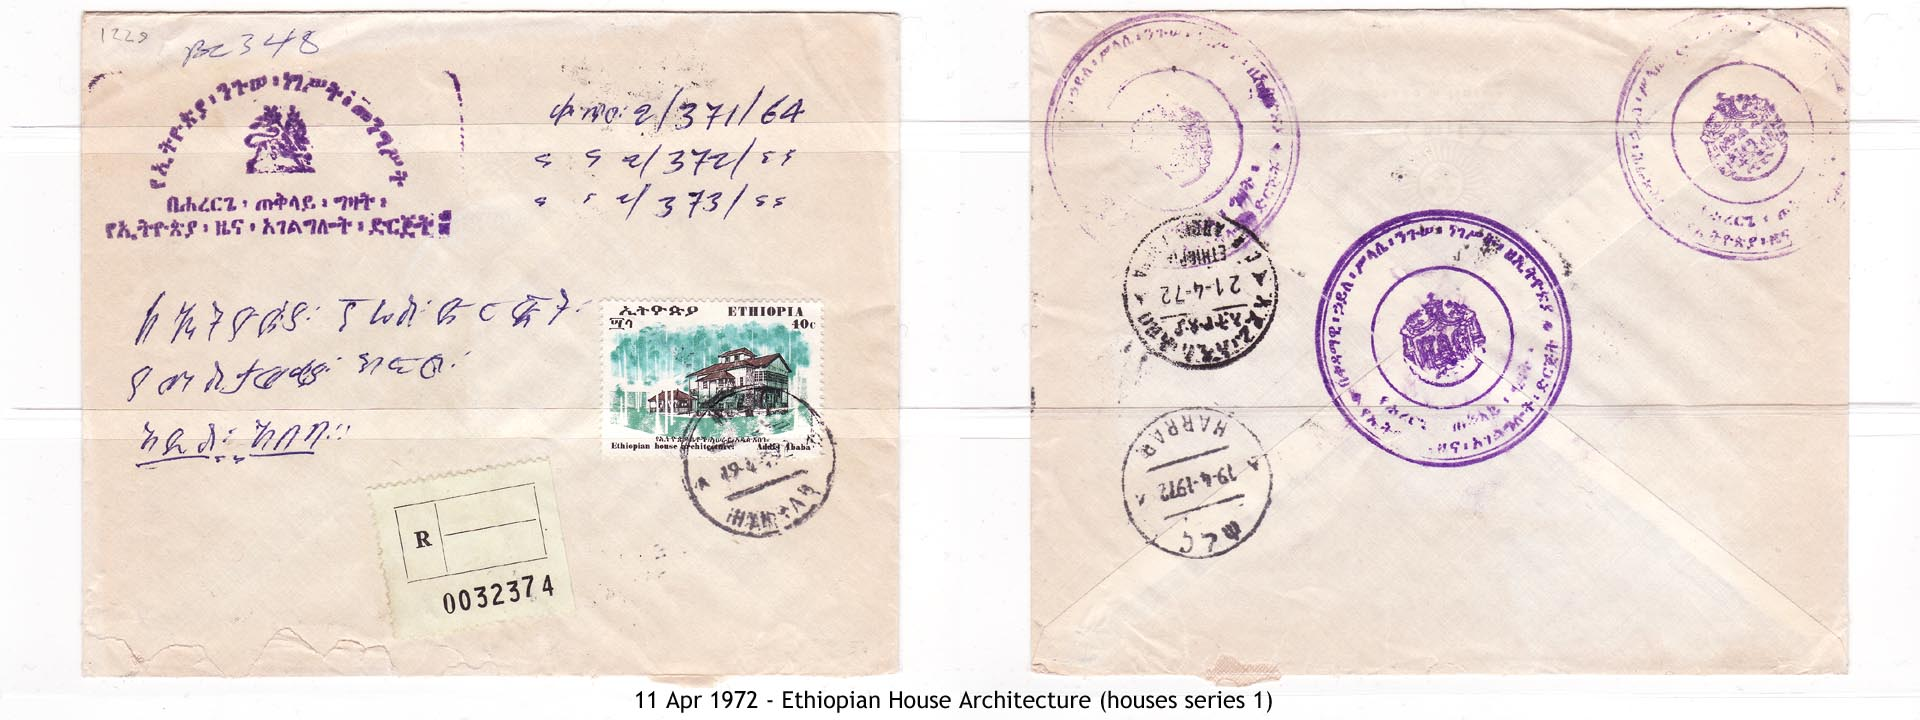 19720411 - Ethiopian House Architecture (houses series 1)